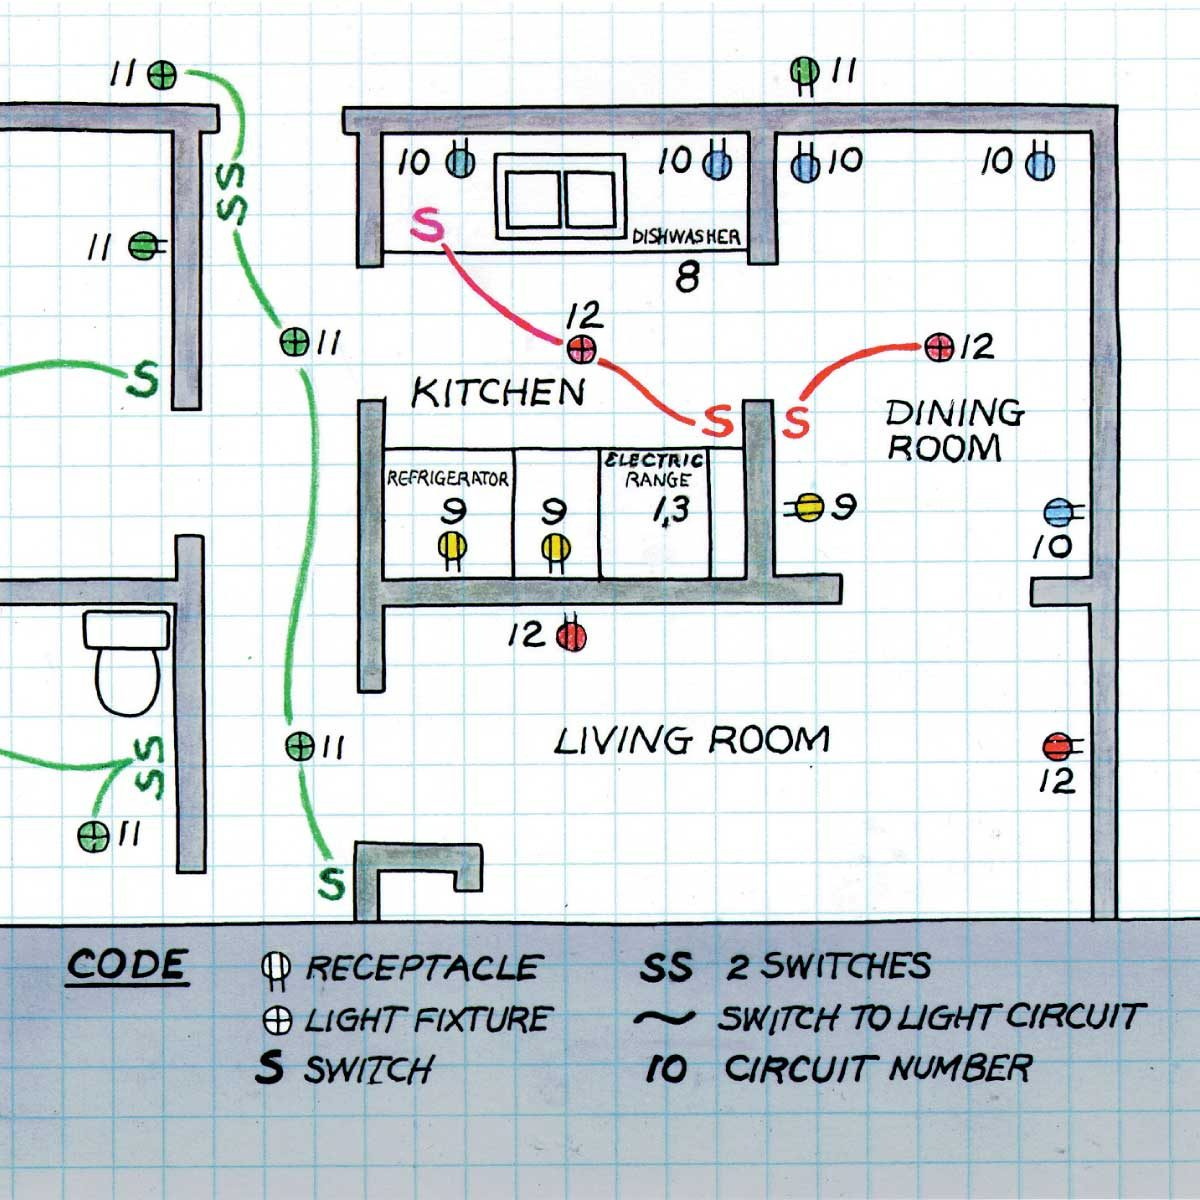 [XOTG_4463]  Preventing Electrical Overloads | Family Handyman | Wiring Diagram Power Of A Room |  | The Family Handyman